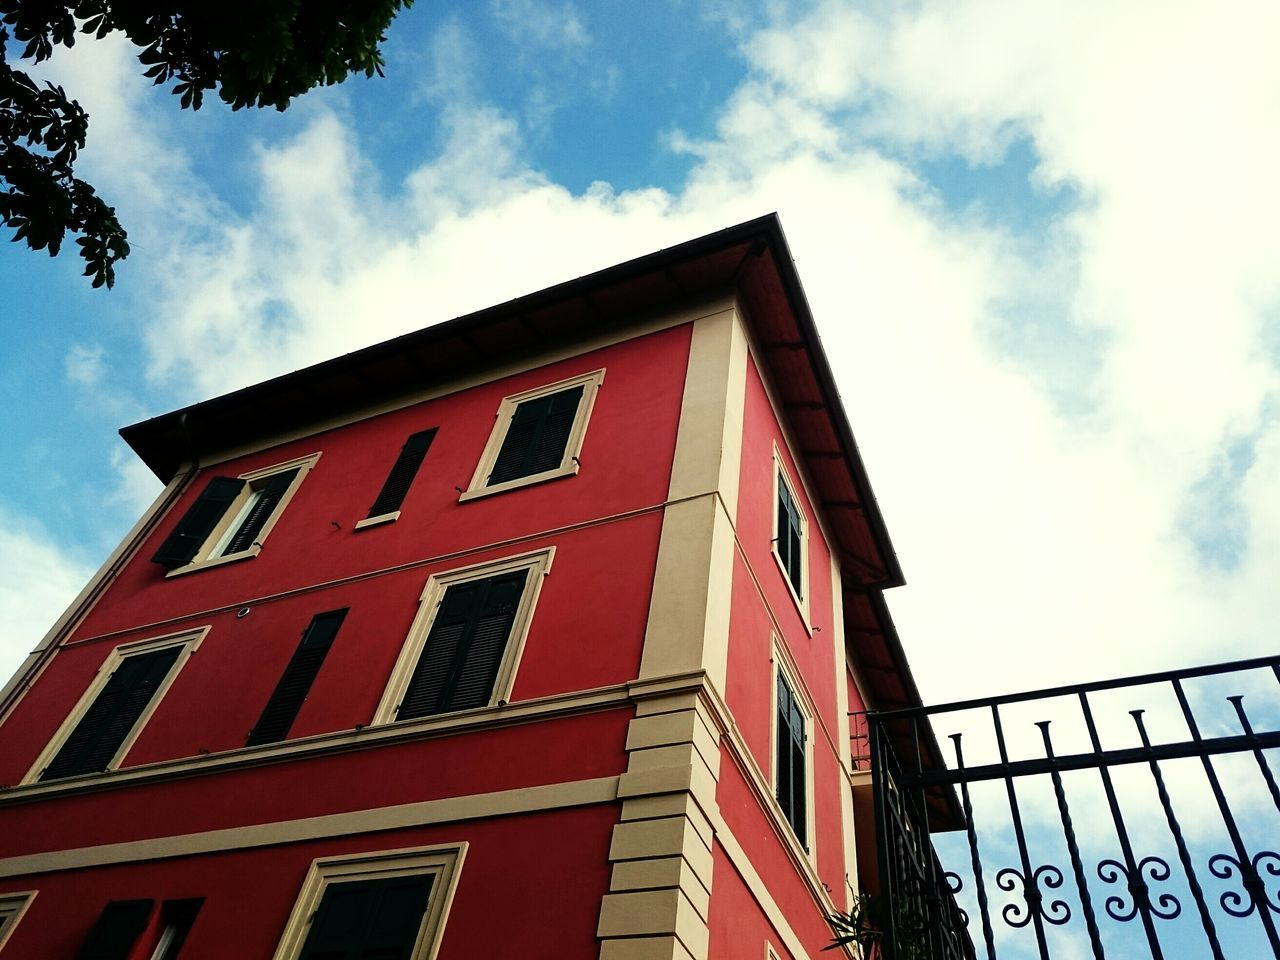 building exterior, sky, low angle view, built structure, architecture, cloud - sky, outdoors, day, window, no people, red, city, nature